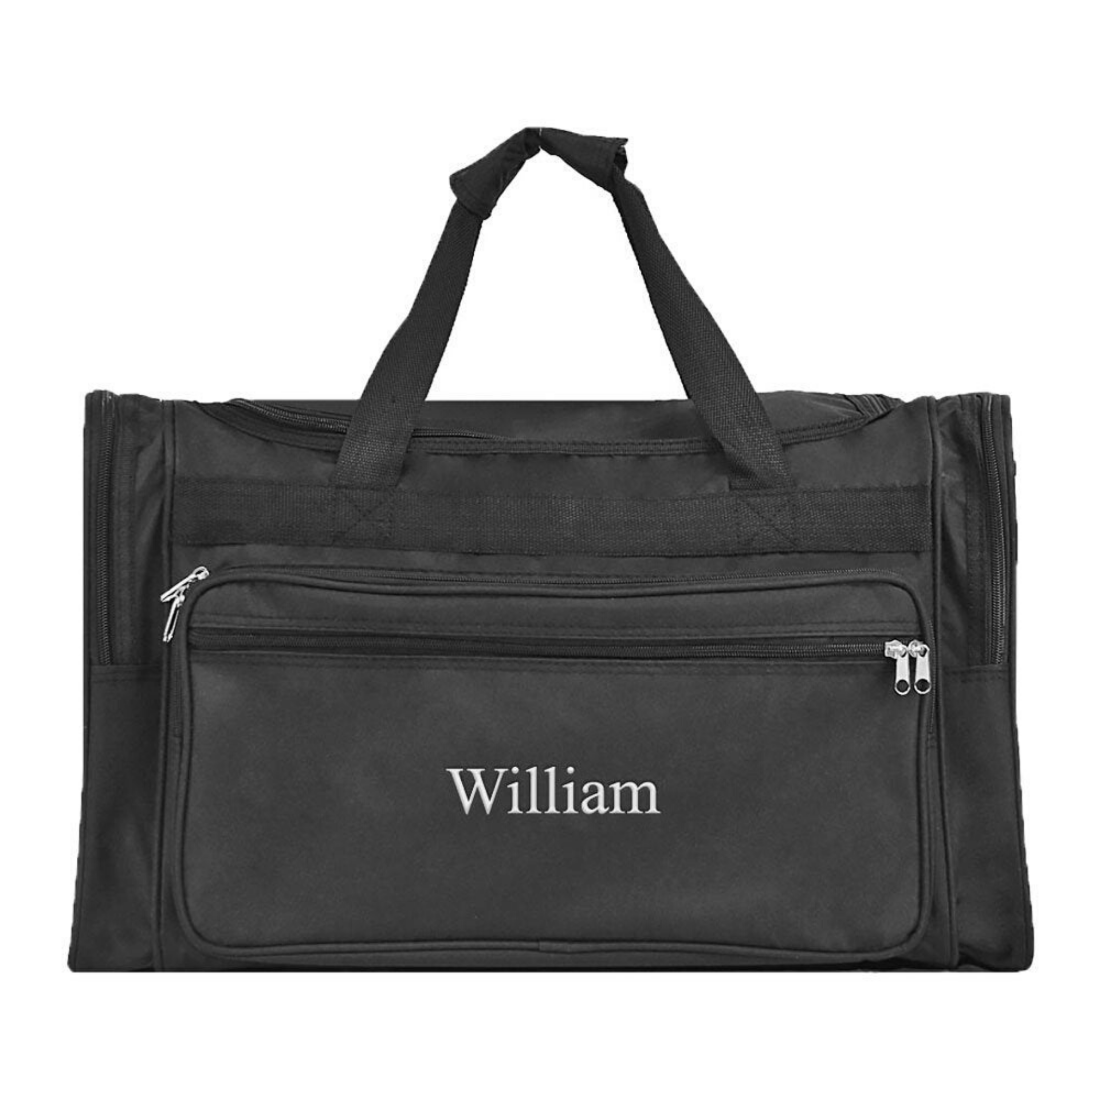 Solid Black Duffle for that plane trip, the gym or overnight bag.